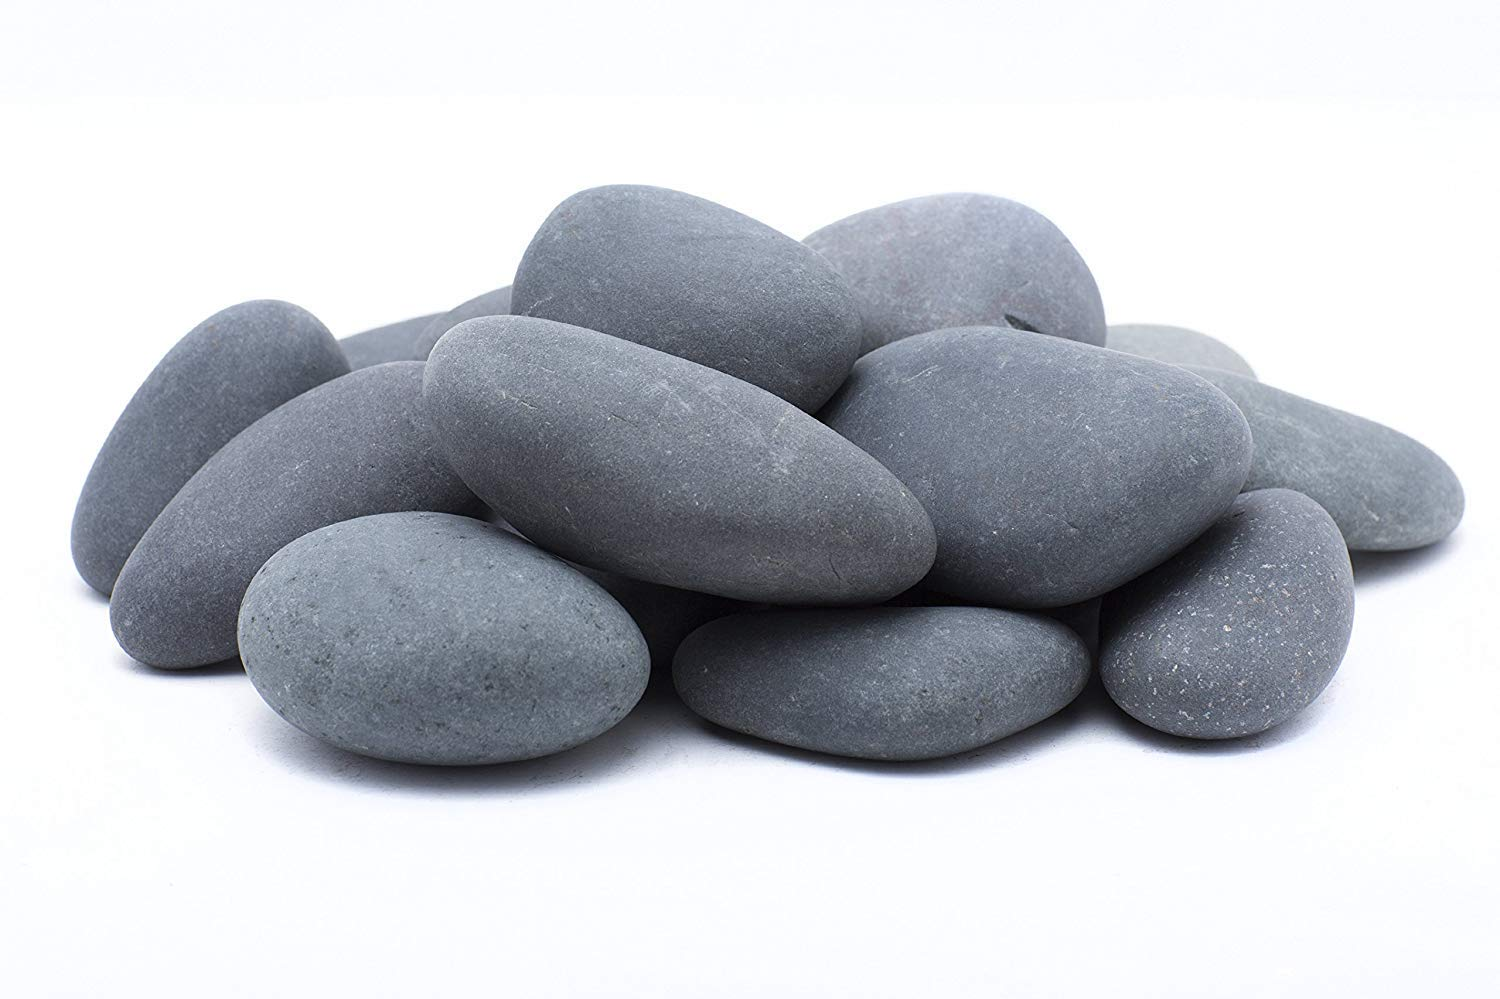 LF Inc. 50 Lb. Premium Large Mexican Beach Pebbles 3-5 inches, Decor, Garden, Landscape